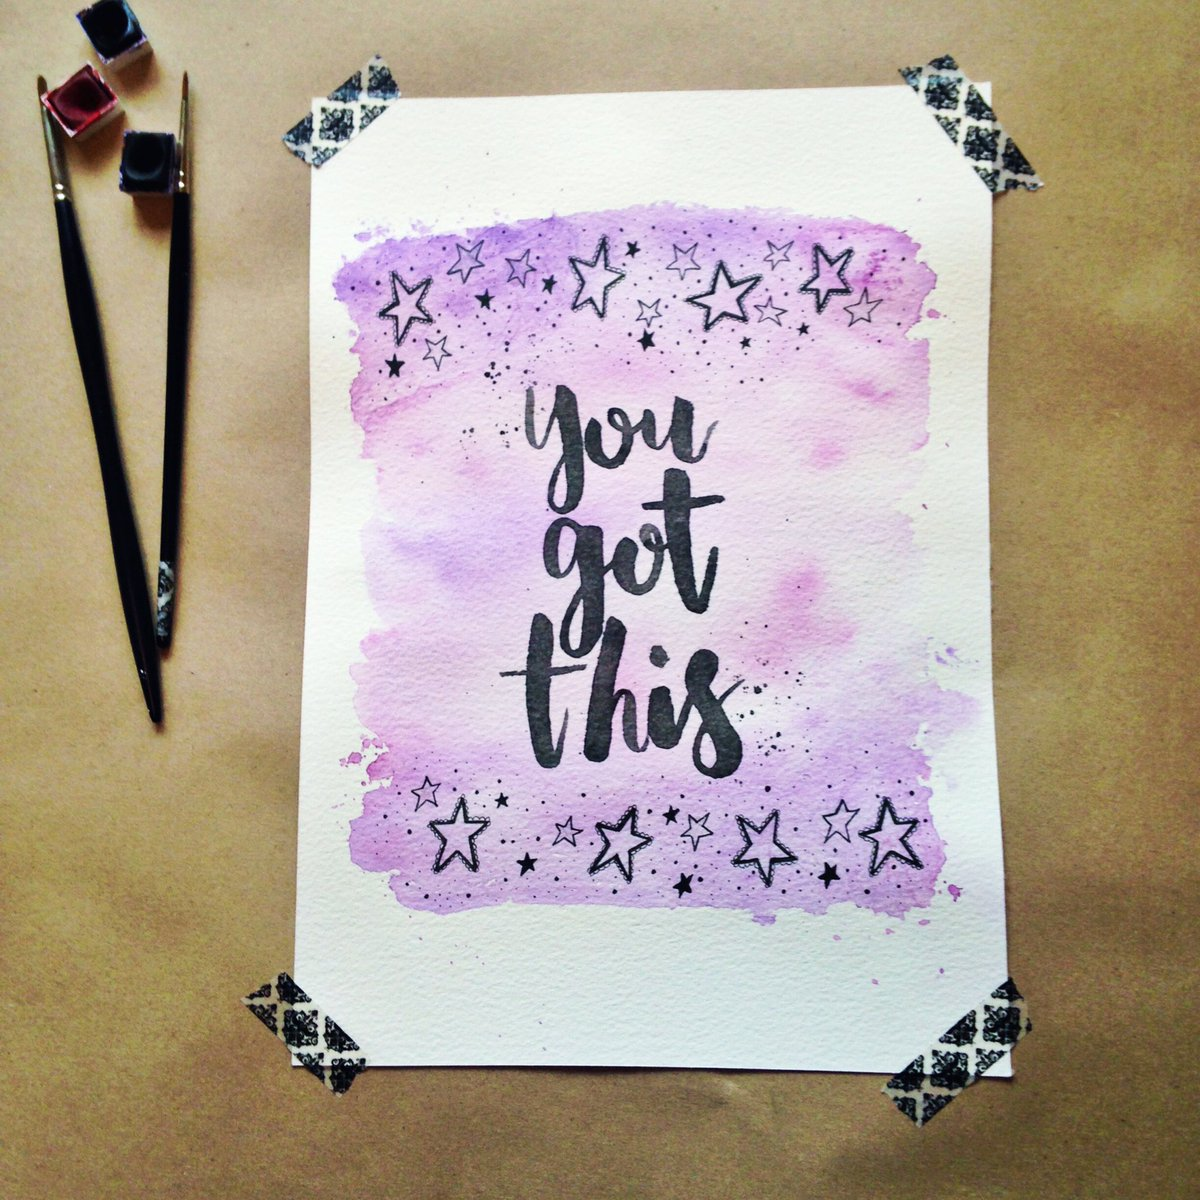 Hand lettered quote prints   https://www. etsy.com/uk/listing/510 059770/wall-art-print-lettering-quote-print?ref=shop_home_active_10 &nbsp; …   #HandMadeHour #etsy #etsychaching @HandmadeHour #handmade<br>http://pic.twitter.com/P1PhVNGS2H